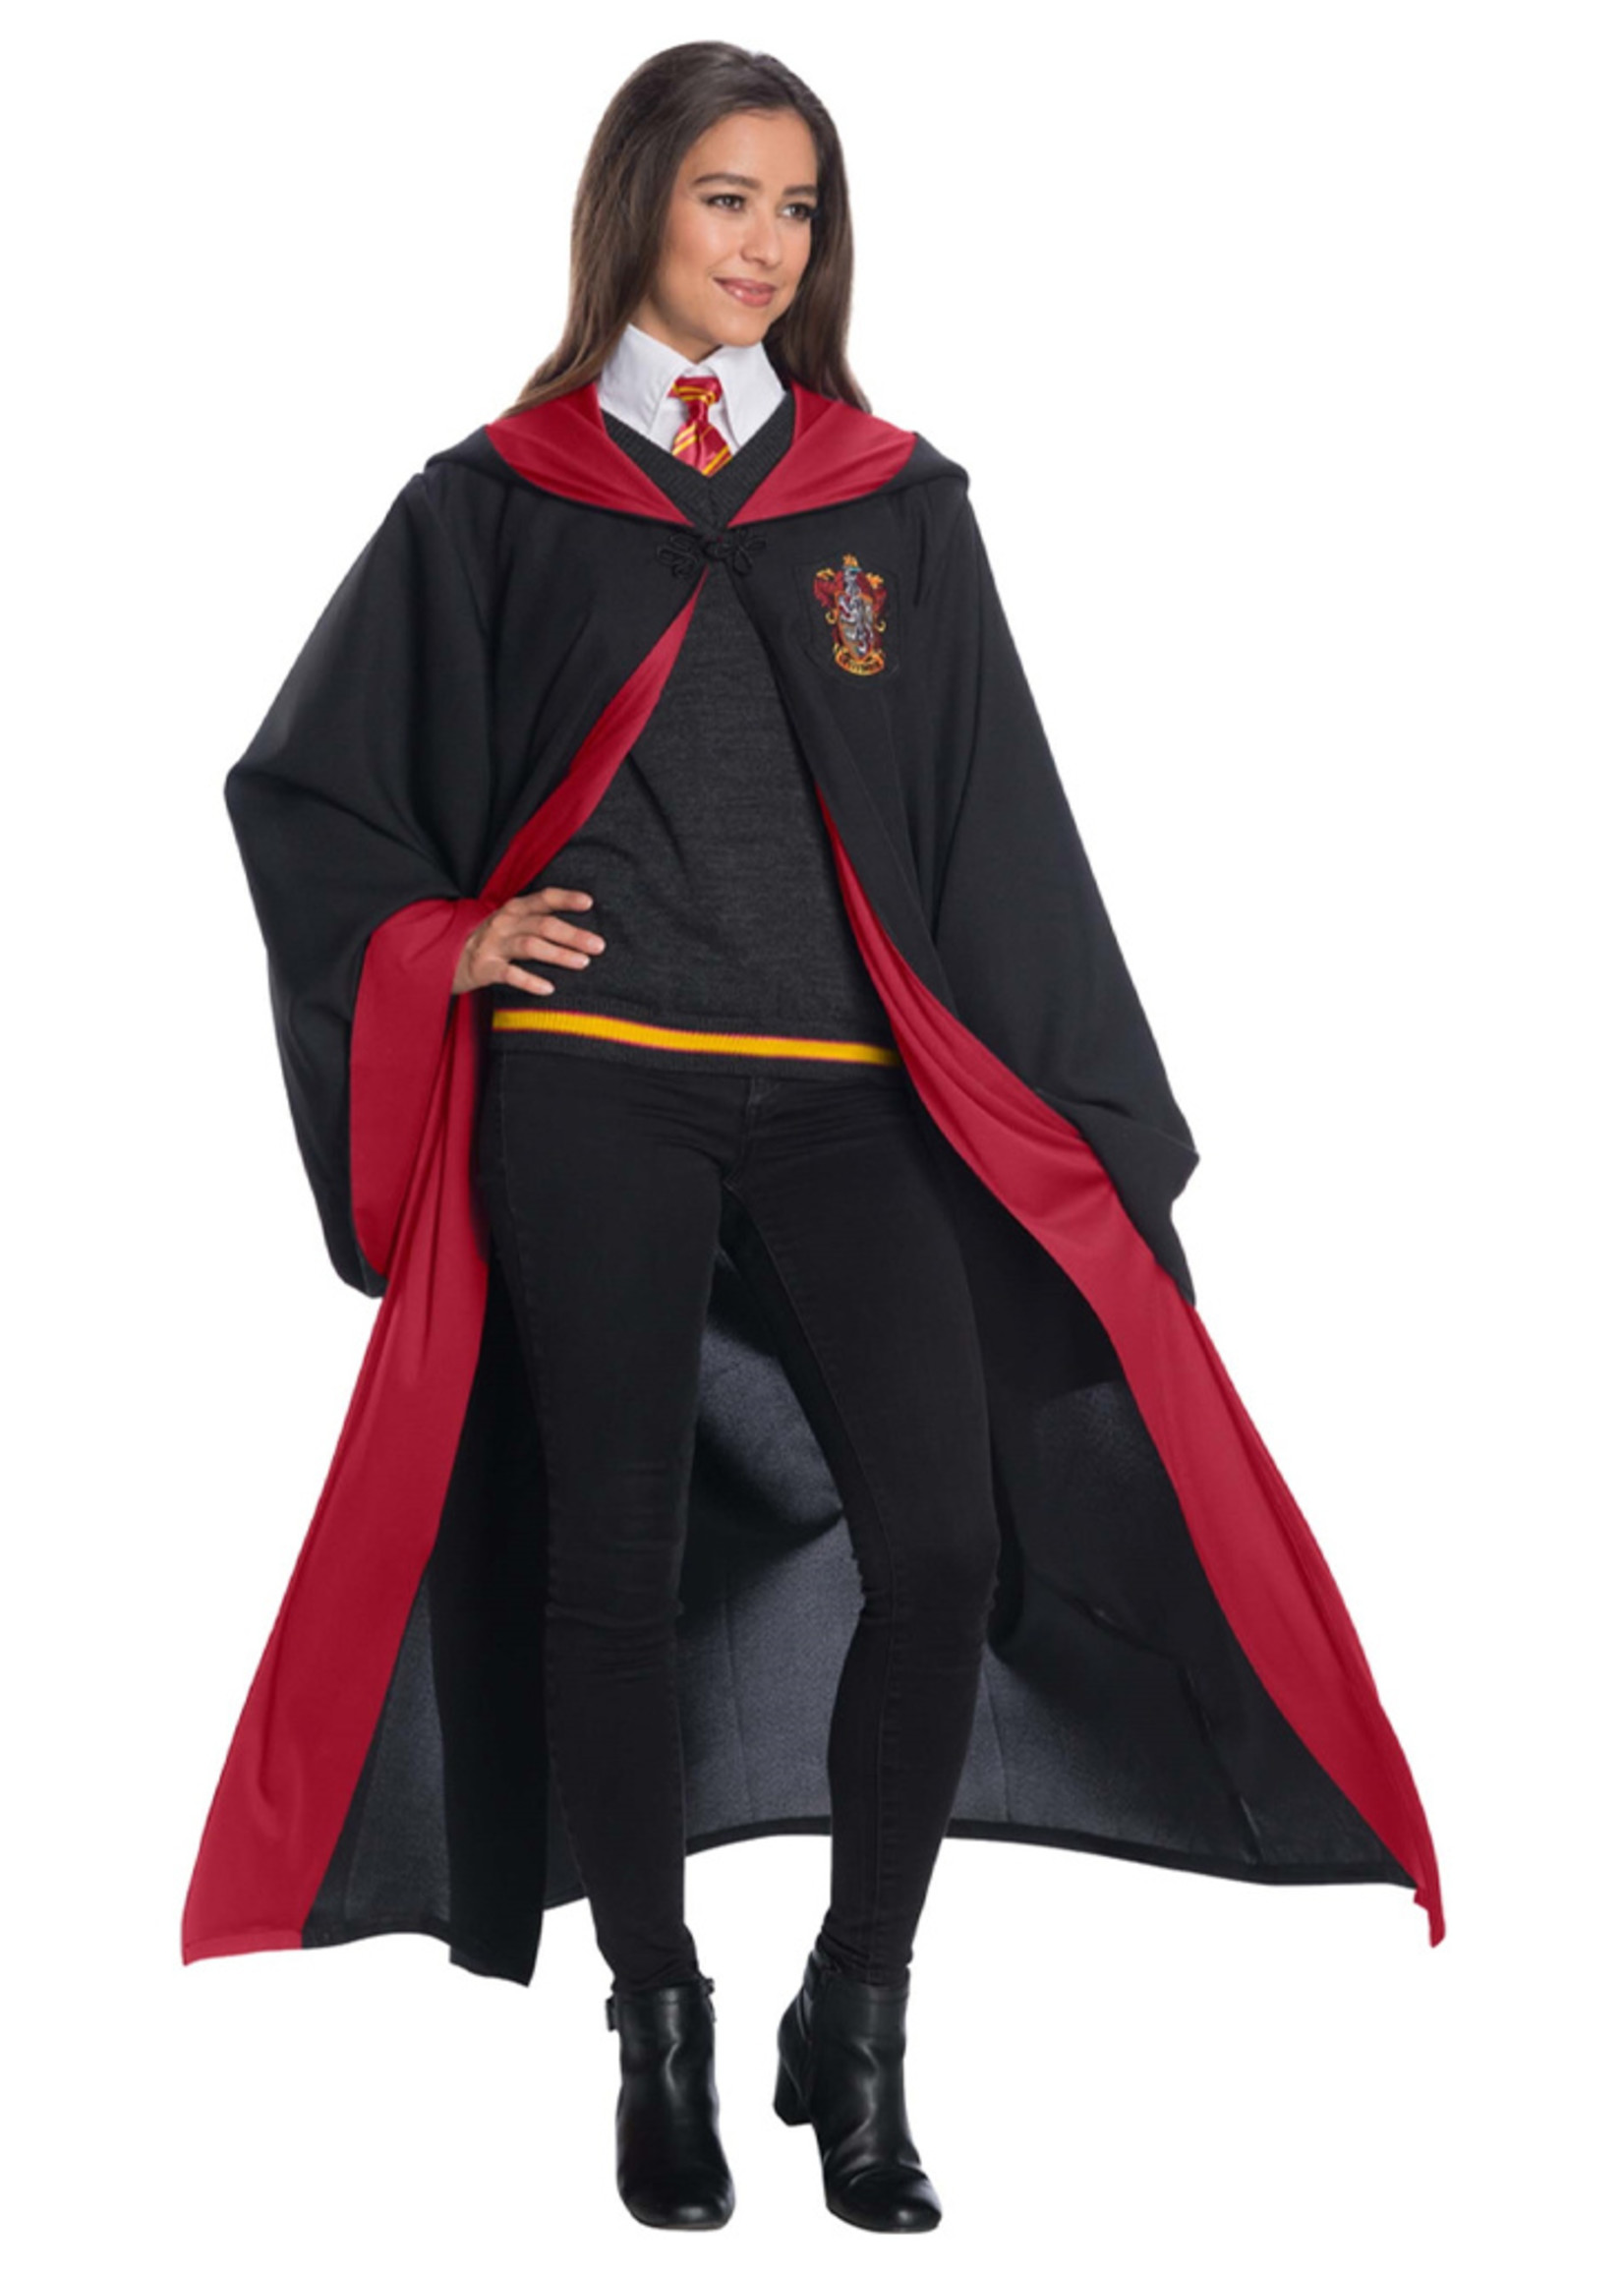 Gryffindor Student Costume - Harry Potter - Adult